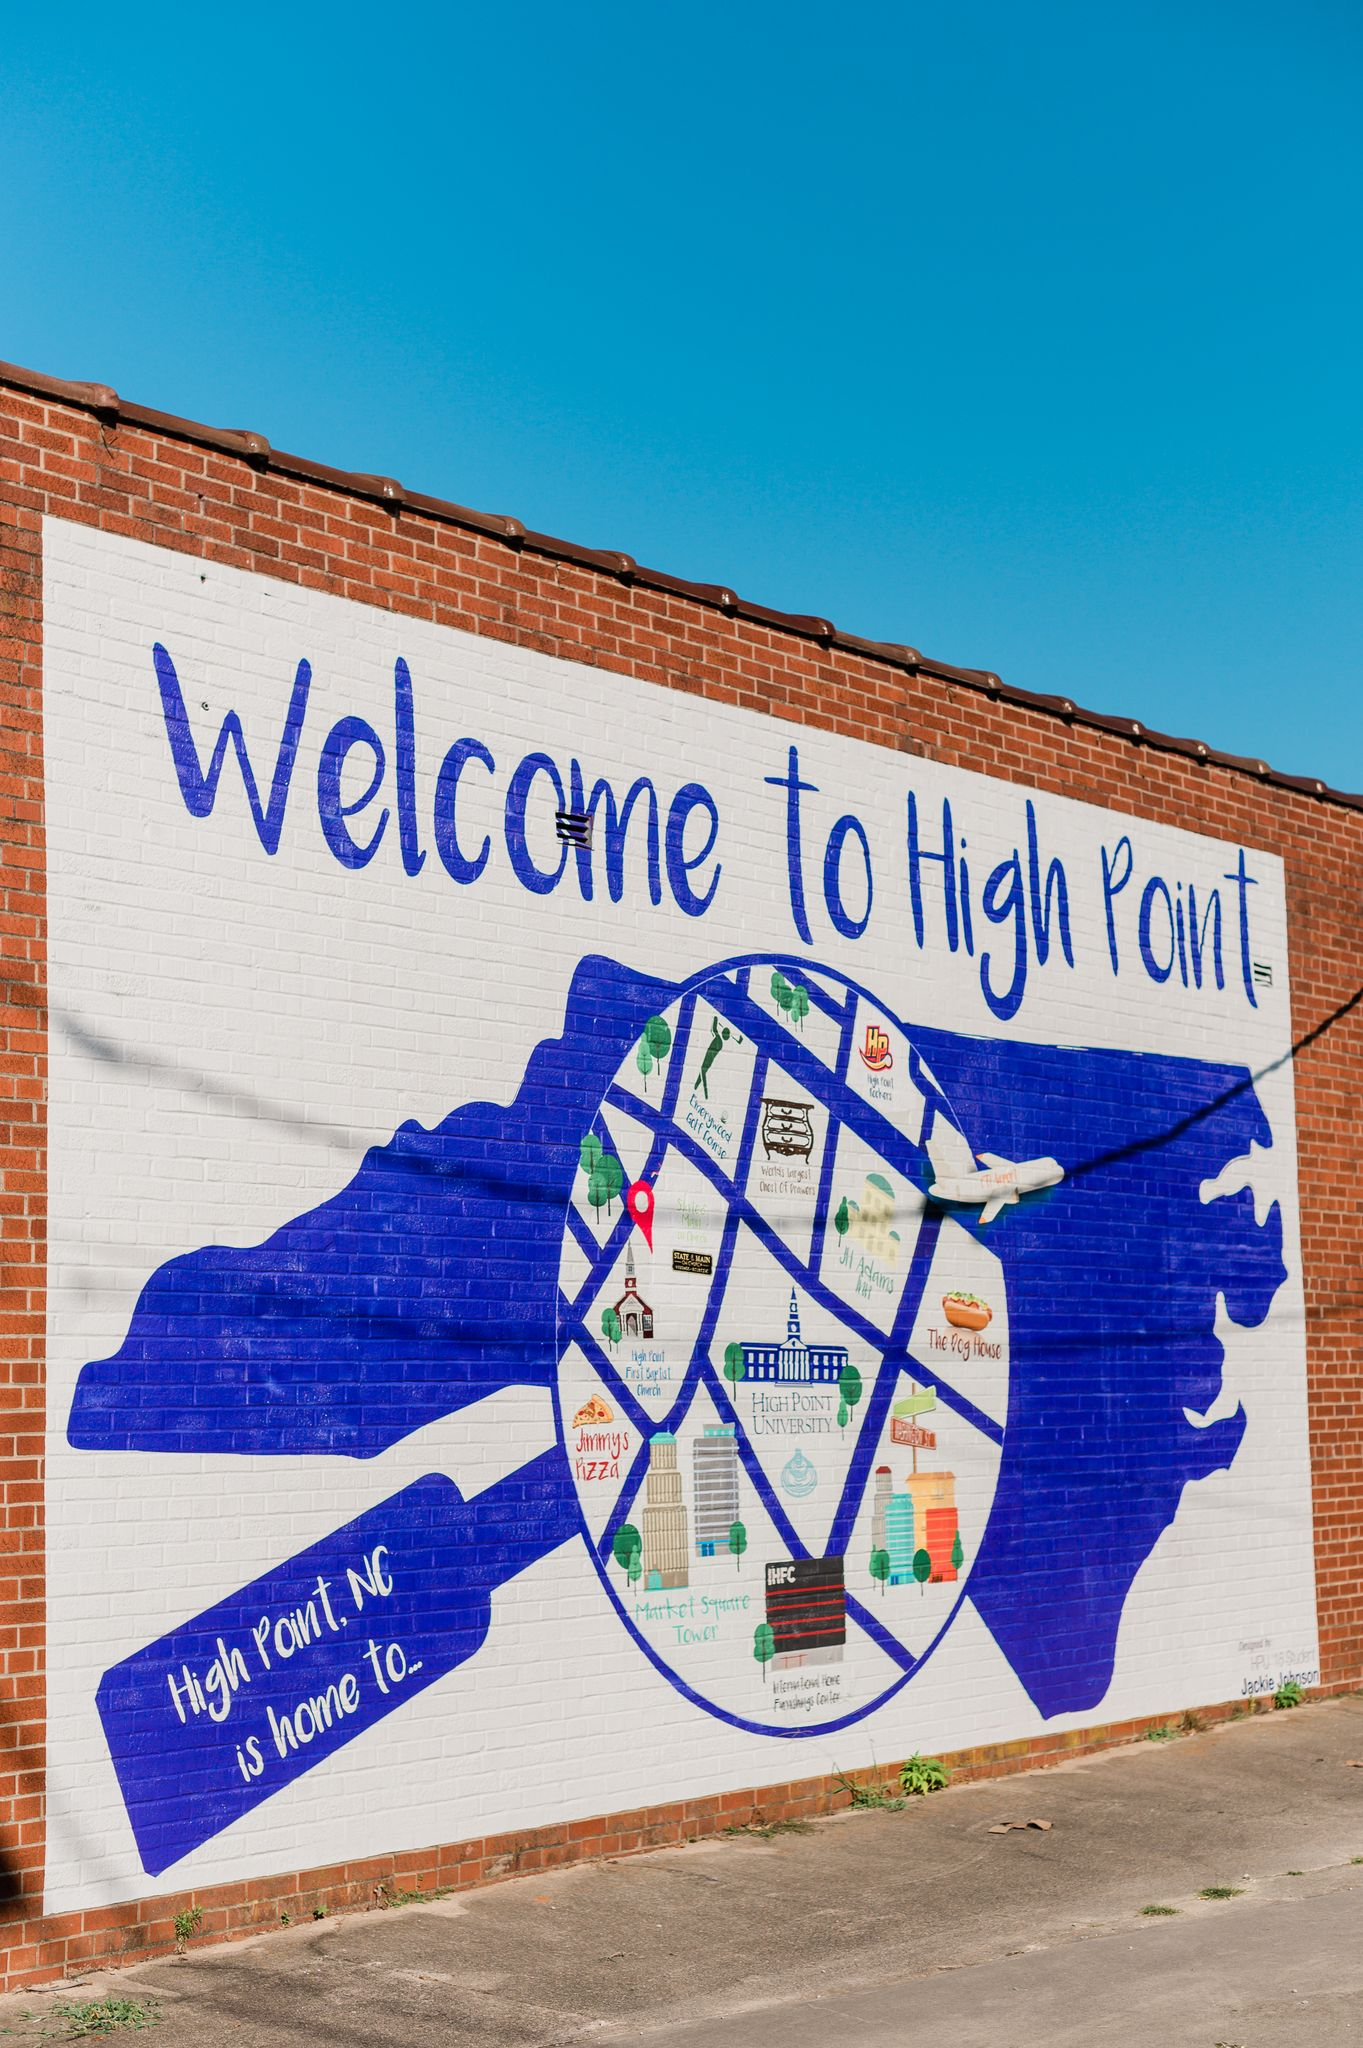 """A mural that says """"Welcome to High Point."""" A purple shape of North Carolina has a circle painted over it with specific locations to High Point."""